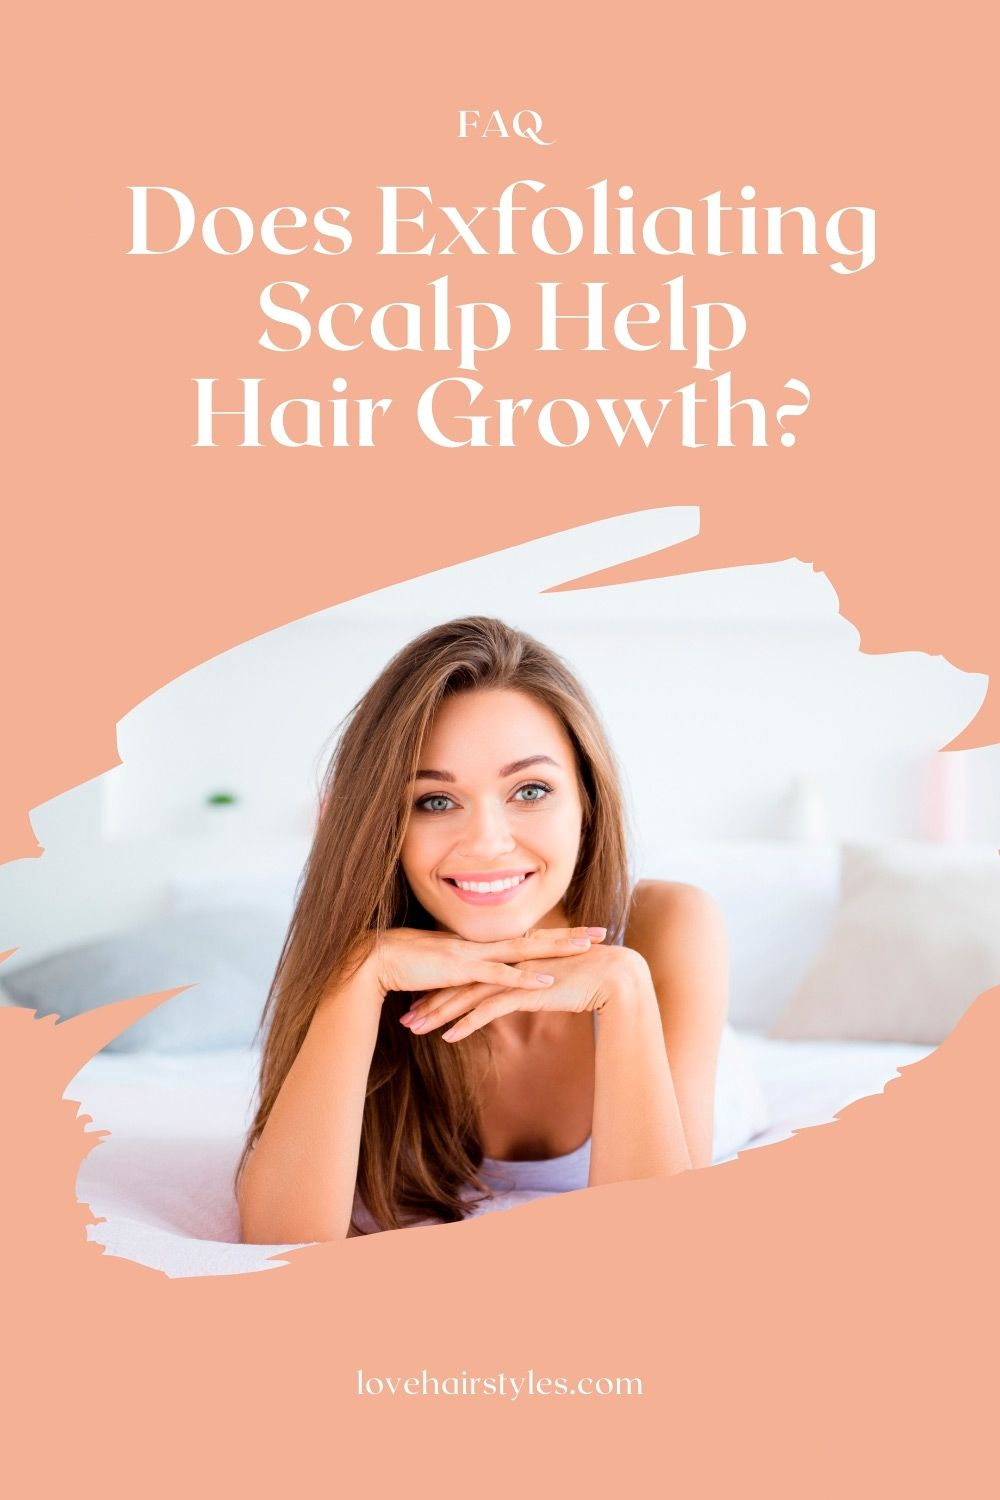 Does Exfoliating Scalp Help Hair Growth?